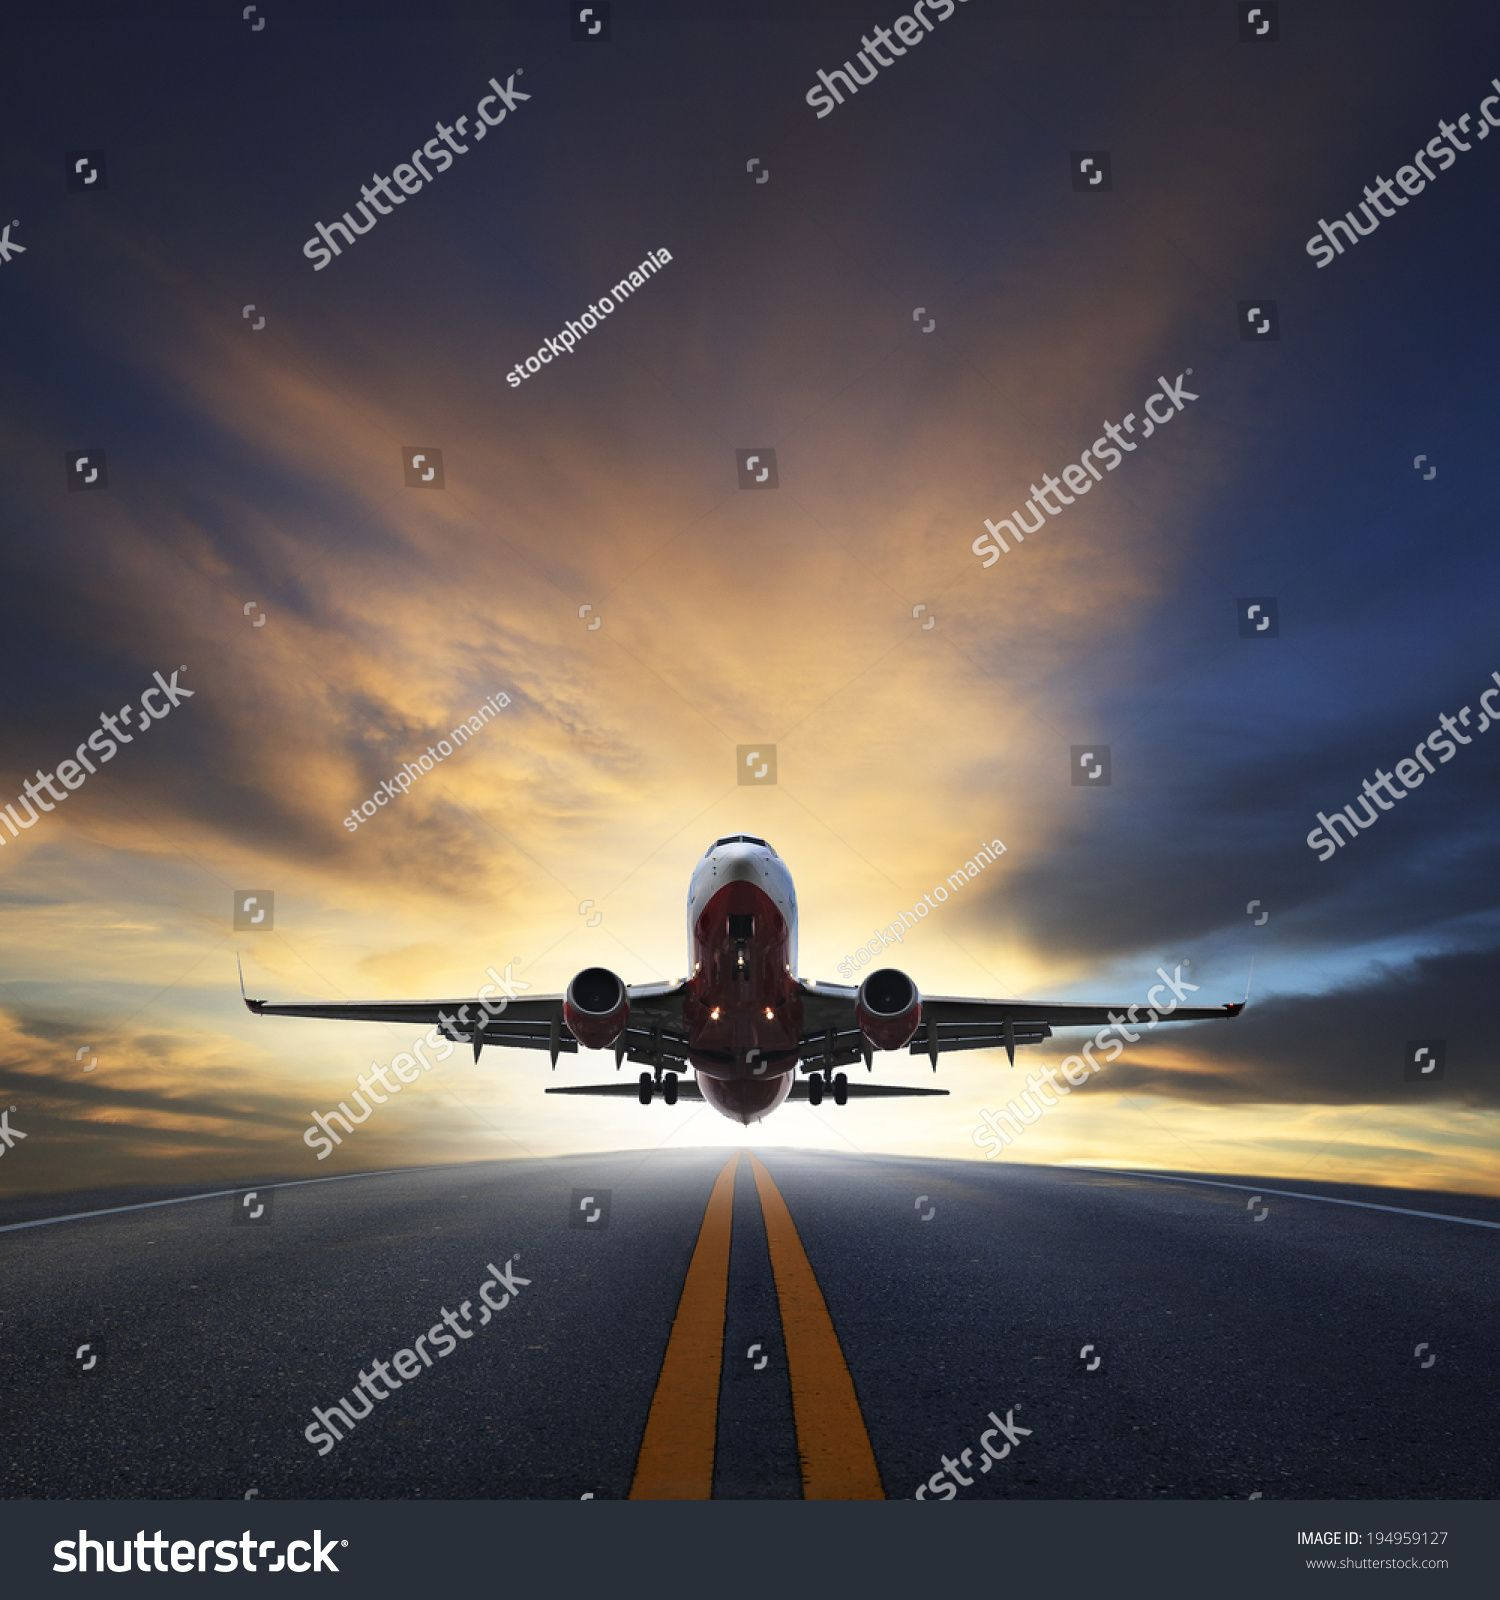 plane taking off from airport runways for traveling and